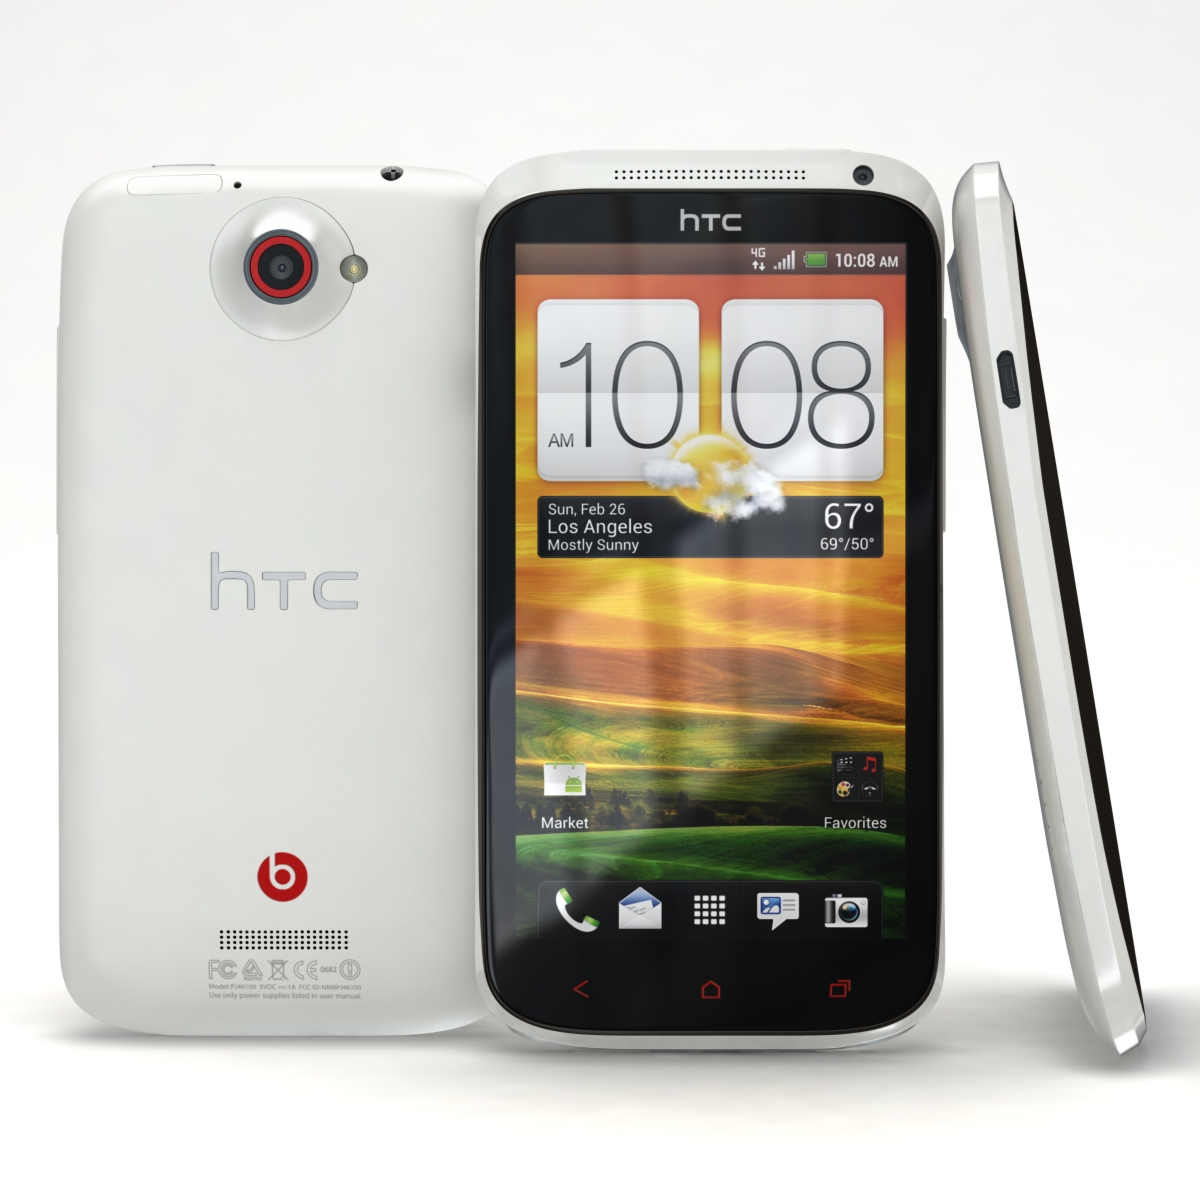 htc one x + polarno bijelo 3d model 3ds max fbx c4d lwo obj 151396